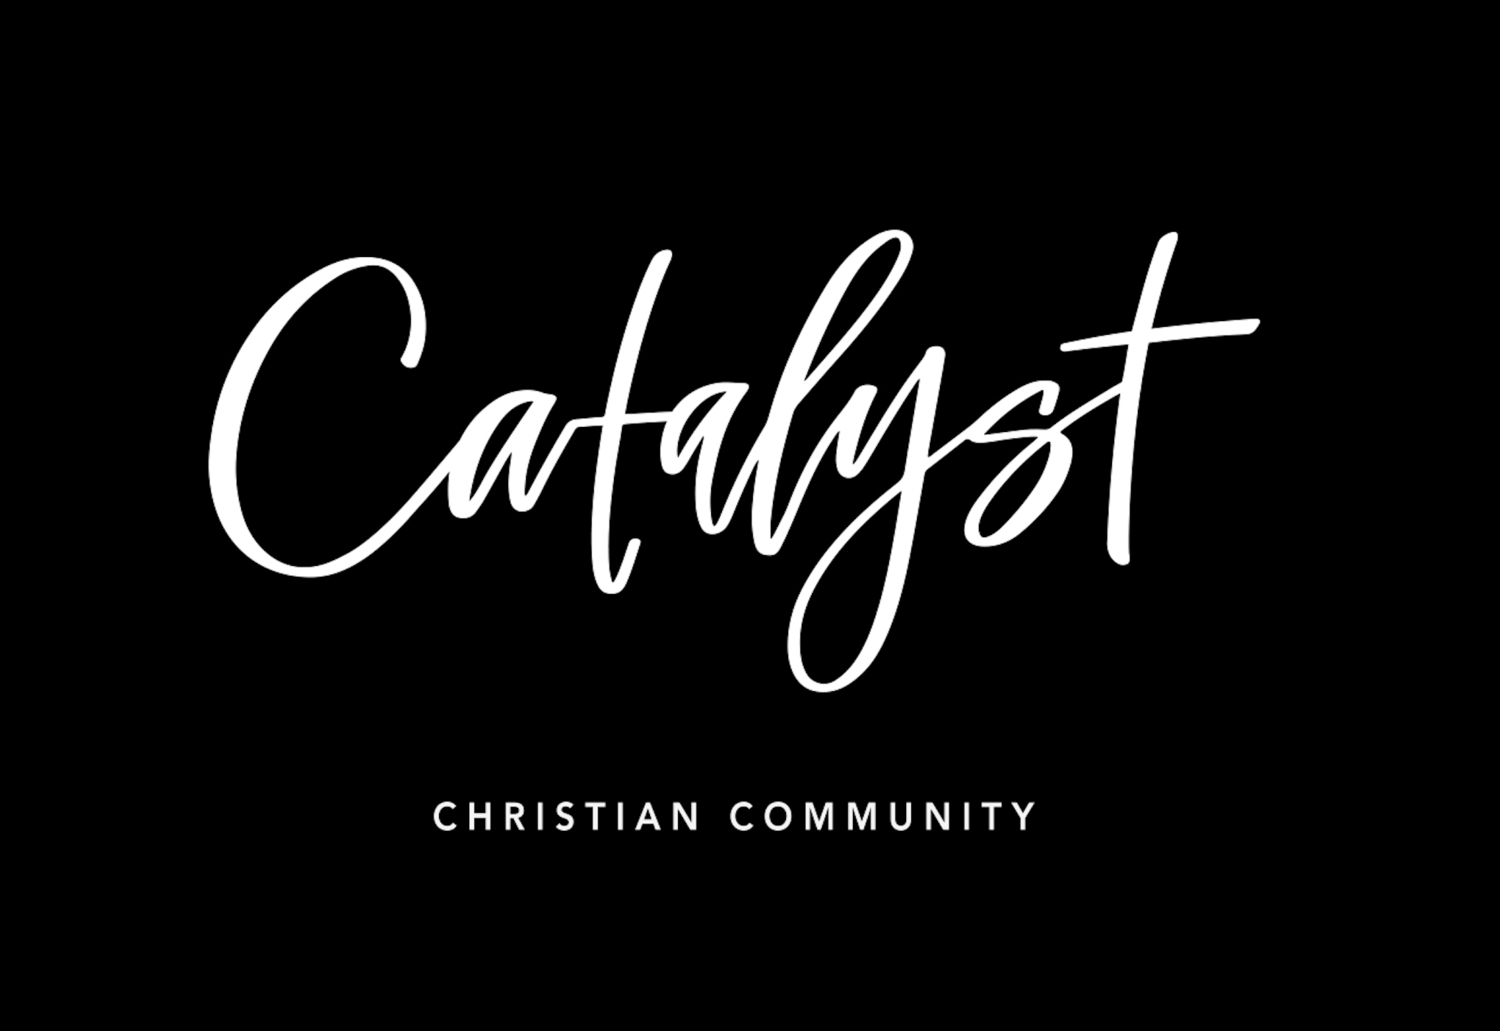 Catalyst Christian Community